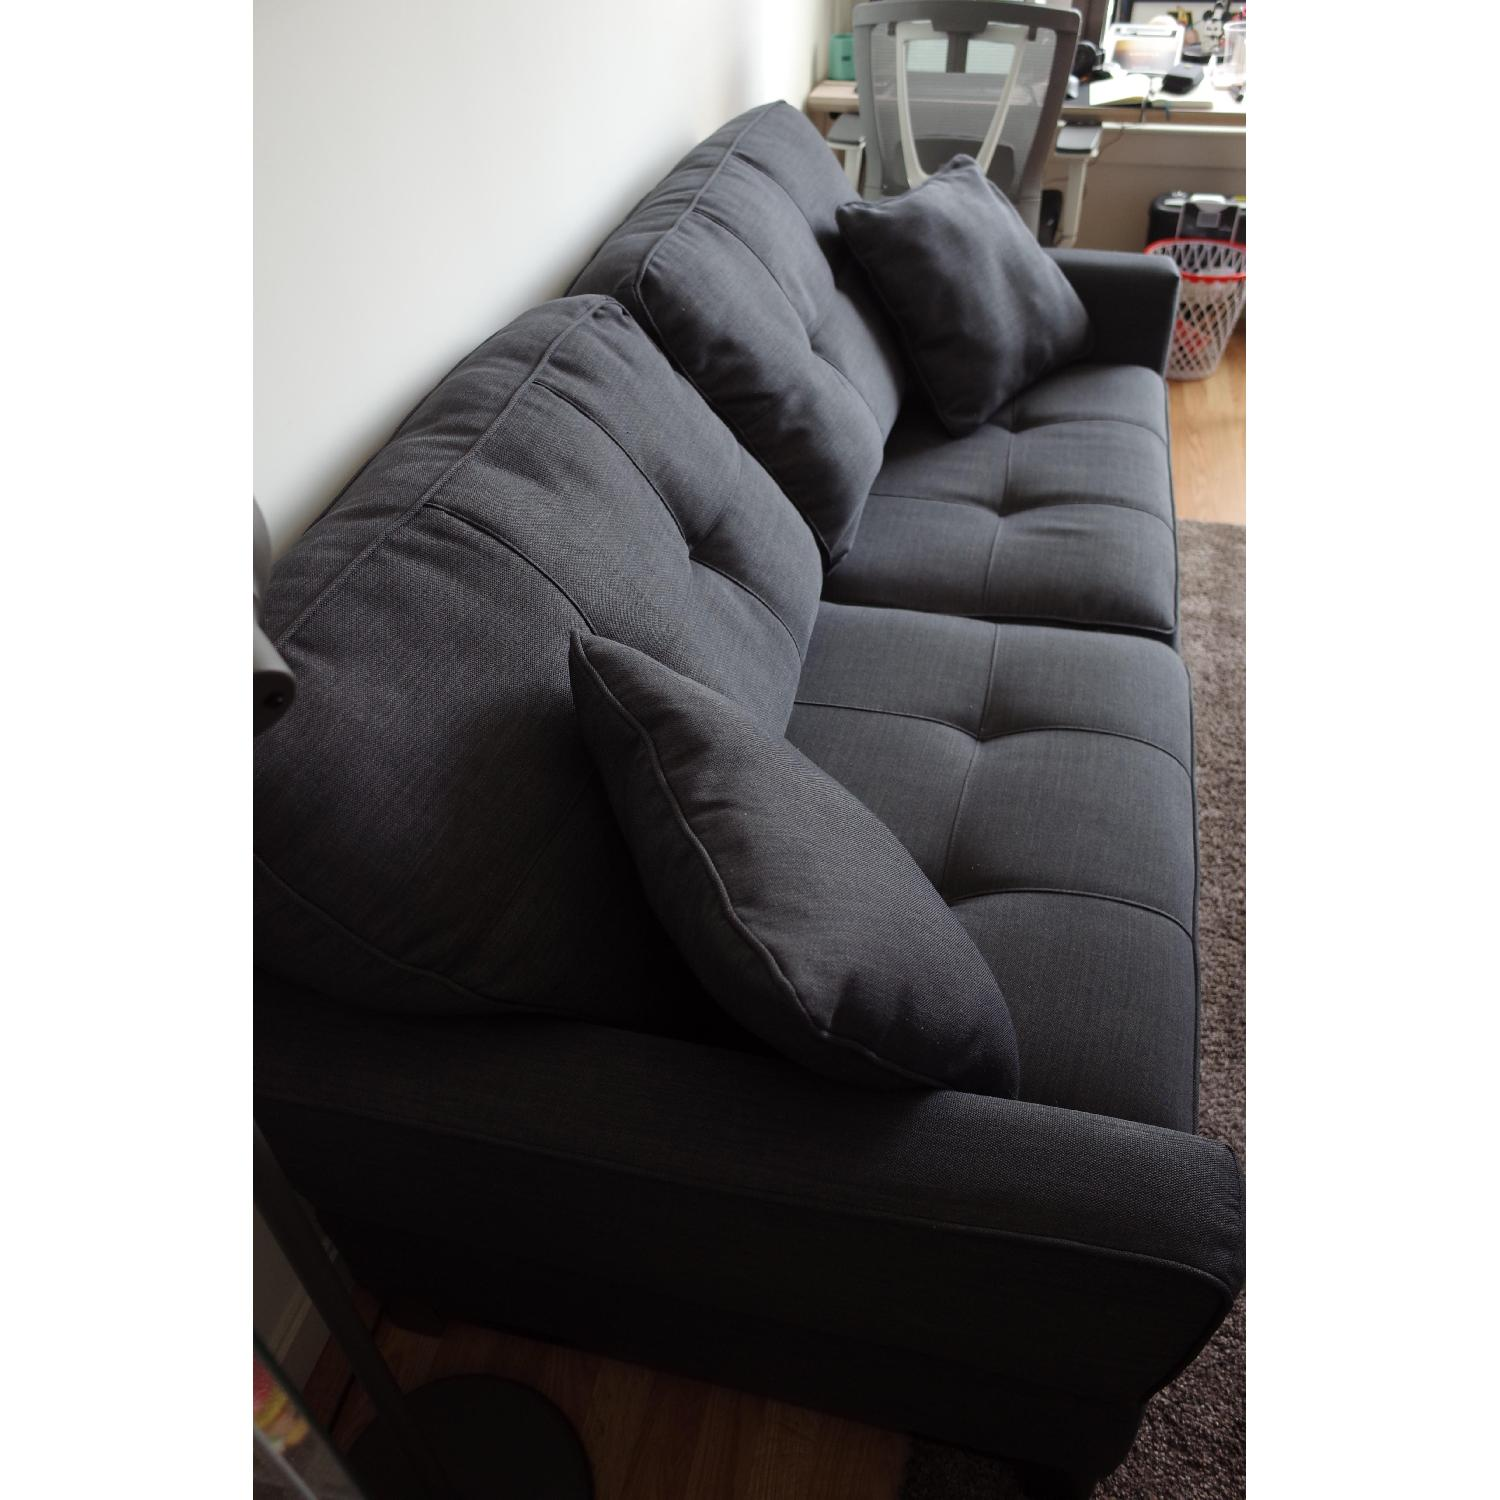 Jennifer Furniture Opus Sofa-3